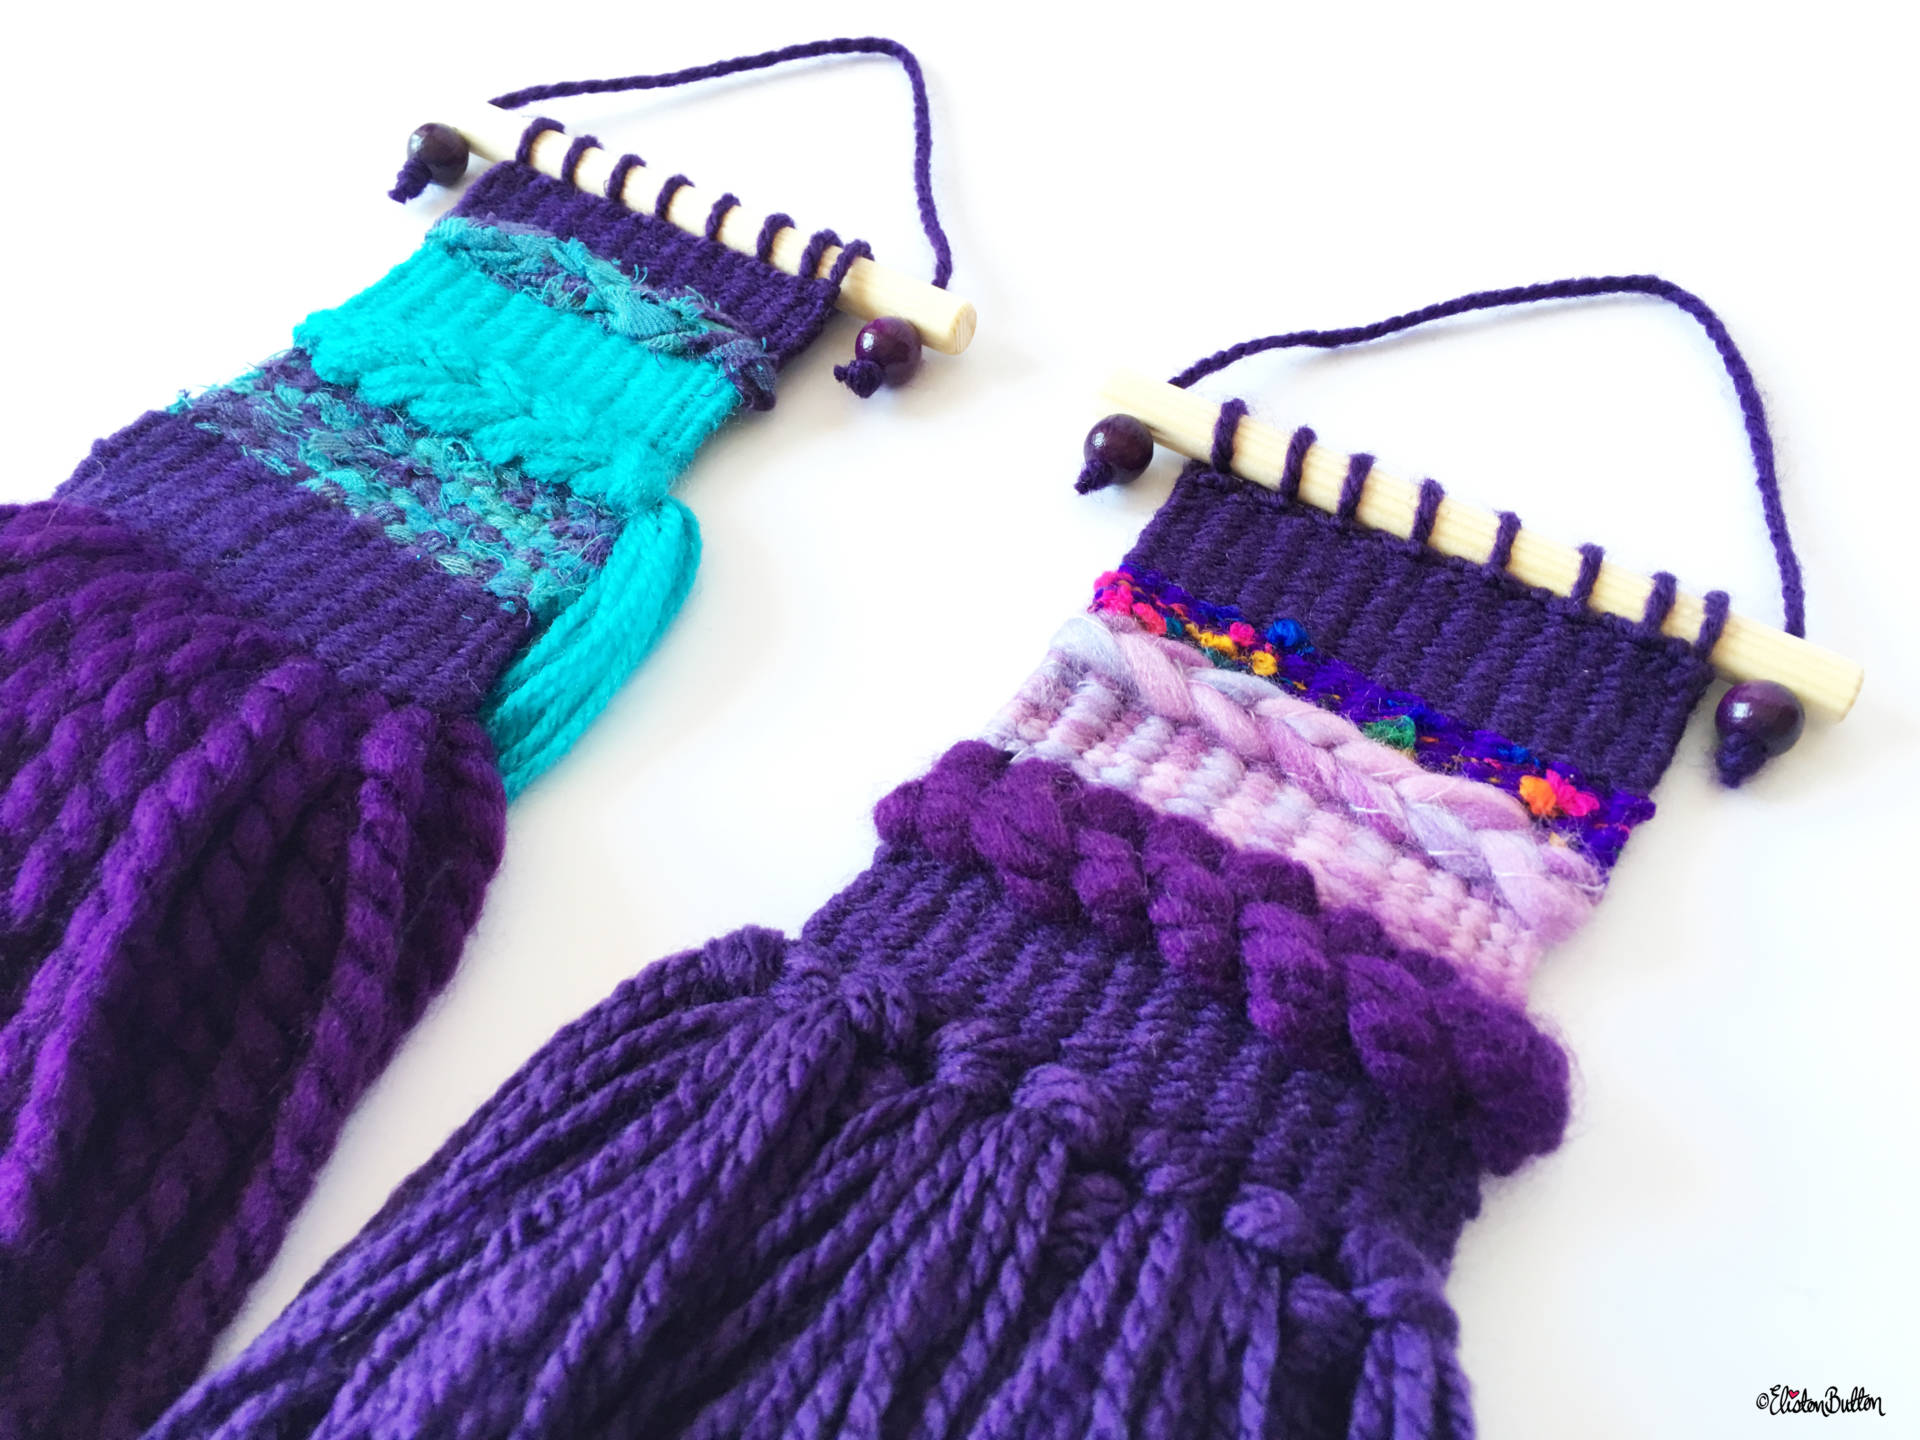 Create 30 - No. 2 - Purple Mini Woven Wall Hangings by Eliston Button Side View - Create 30 - No.2 - Mini Woven Wall Hangings at www.elistonbutton.com - Eliston Button - That Crafty Kid – Art, Design, Craft & Adventure.